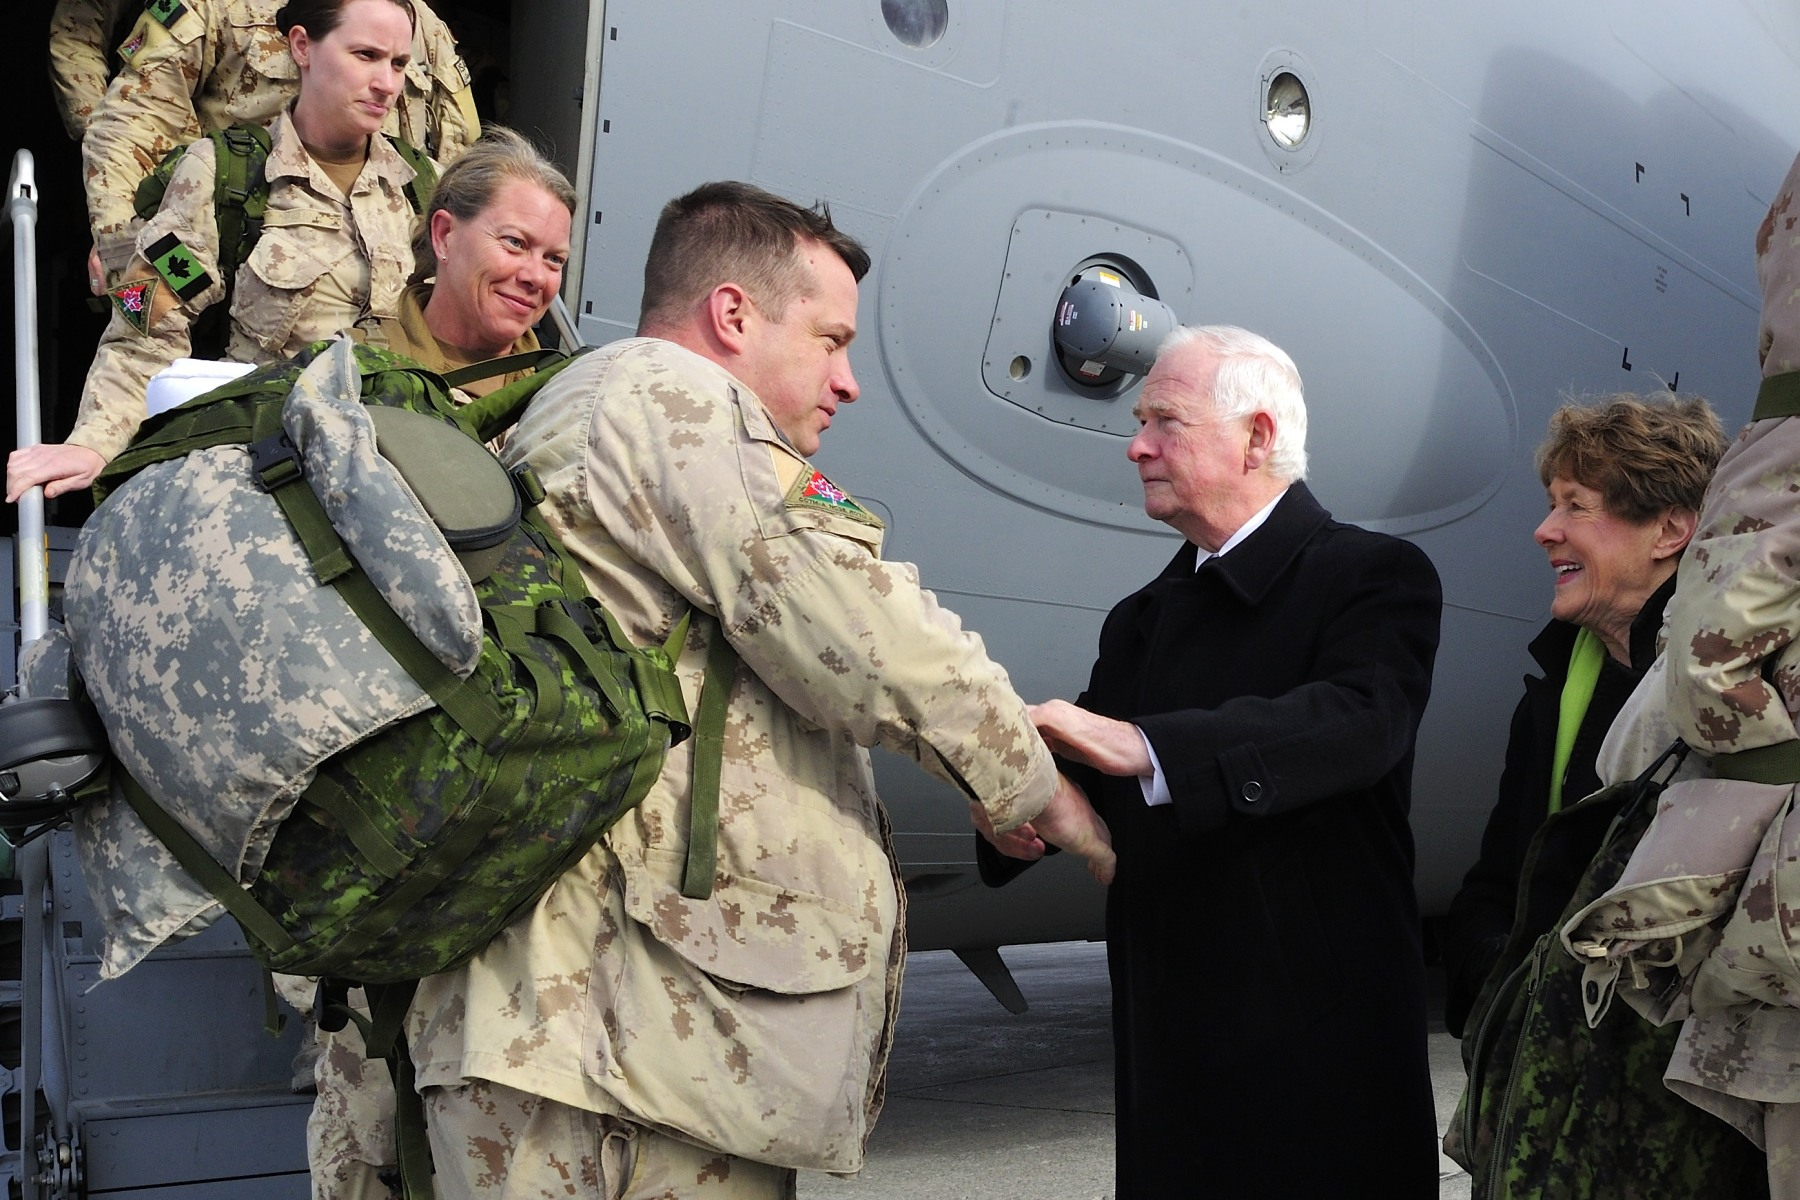 His Excellency, as commander-in-chief, greeted the returning troops.